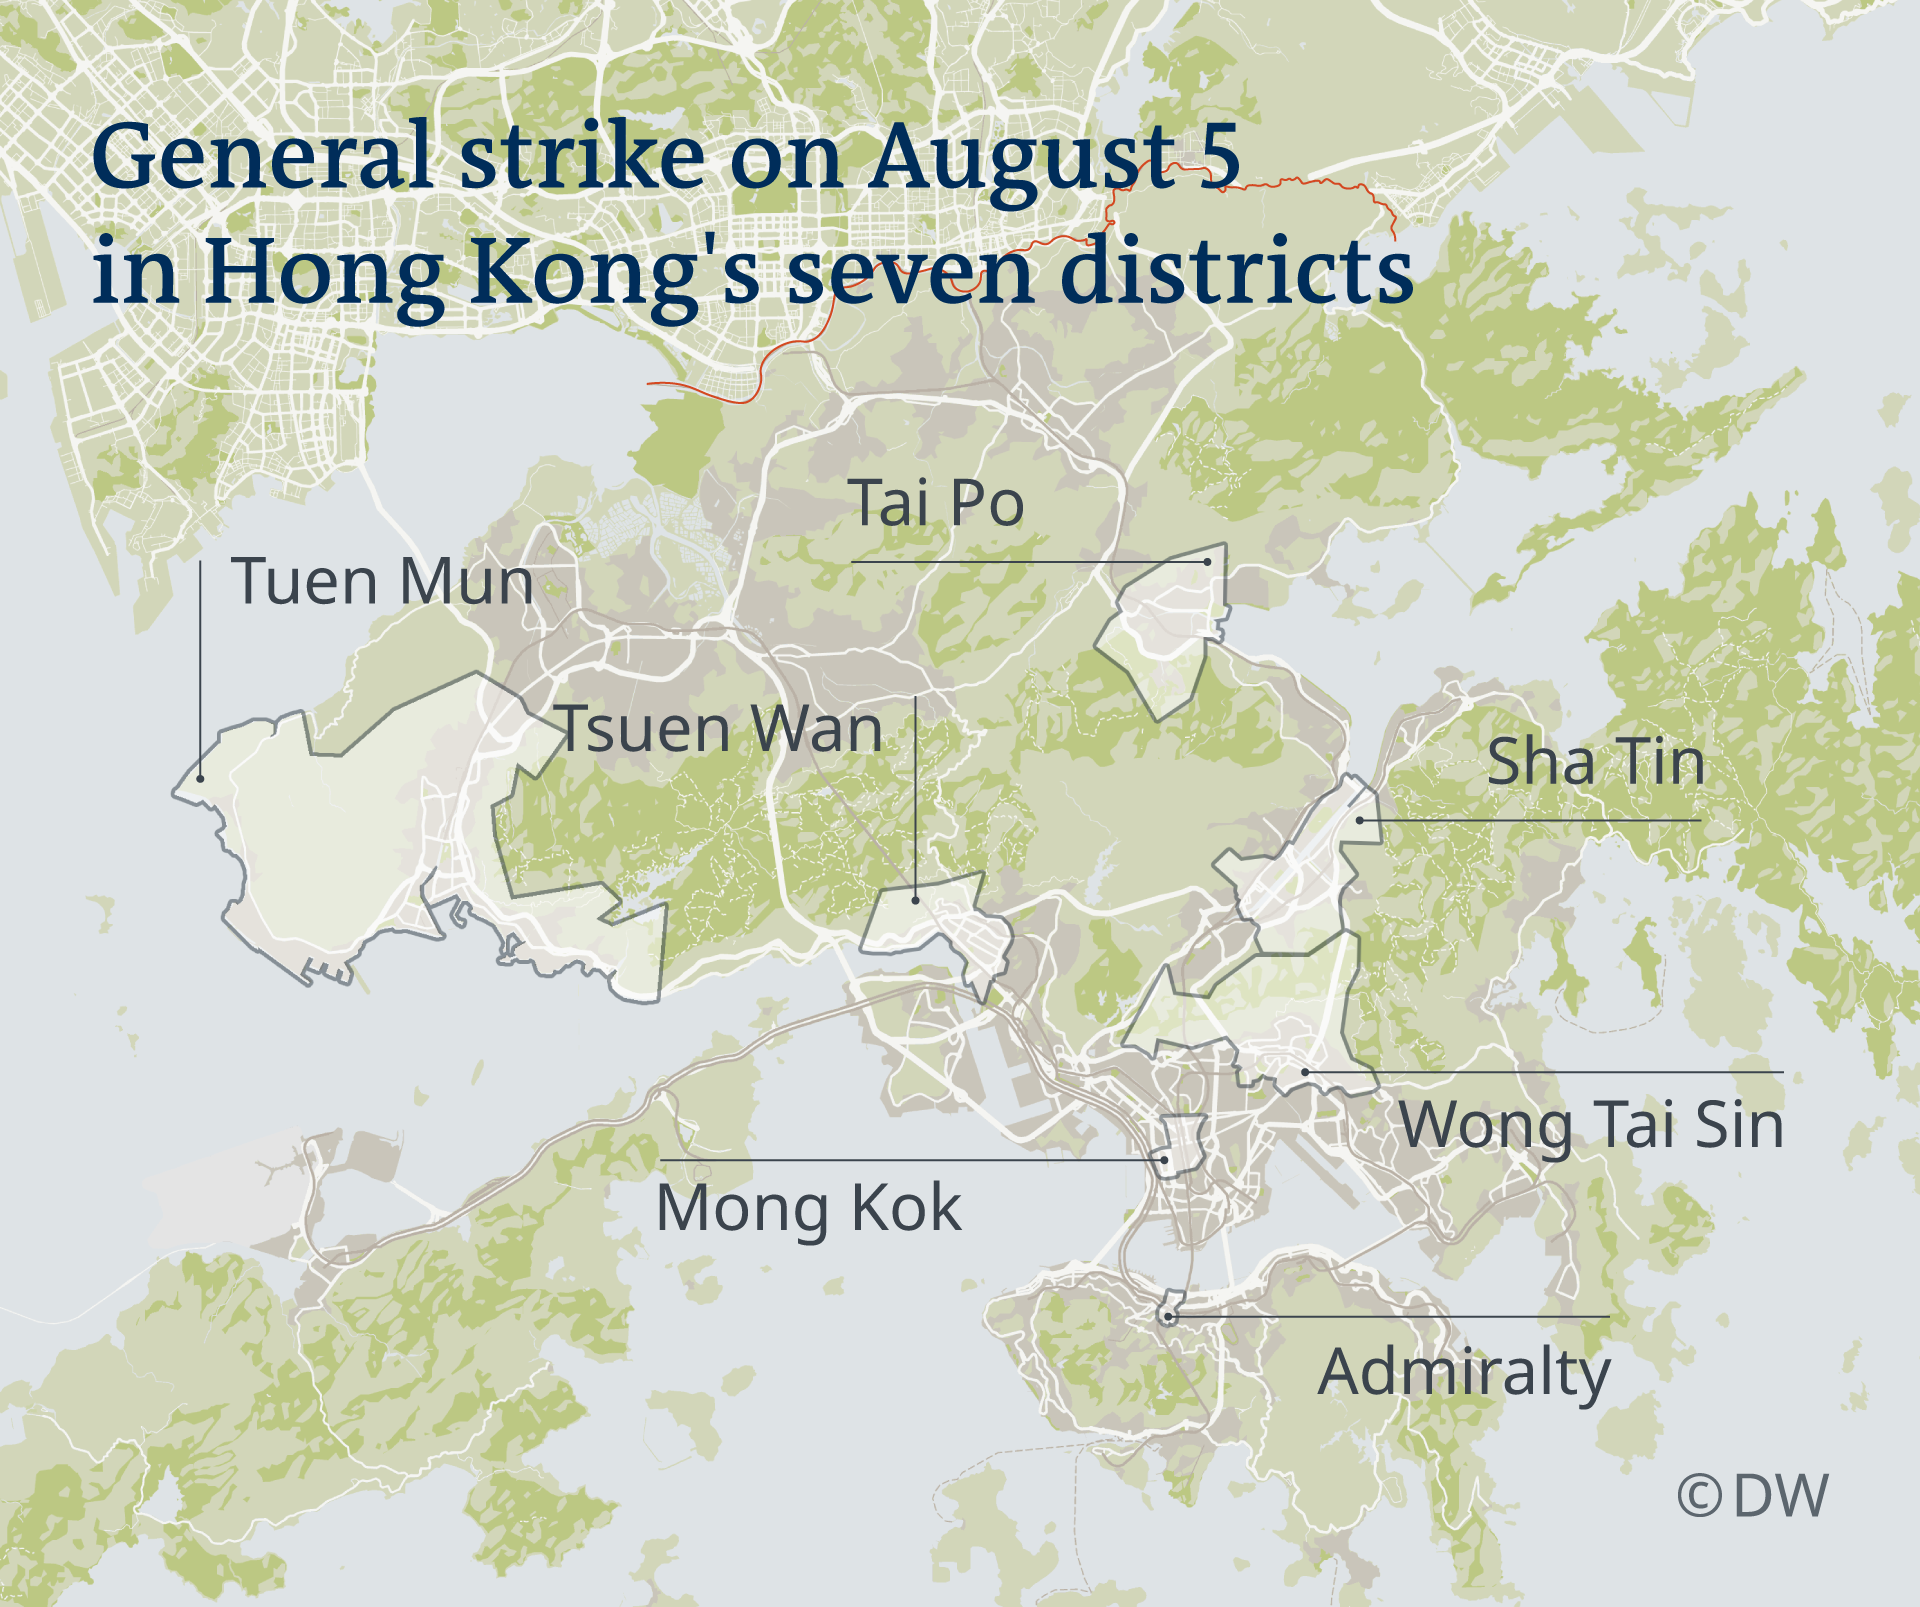 A map showing where the general strike on August 5 is expected to take place across Hong Kong